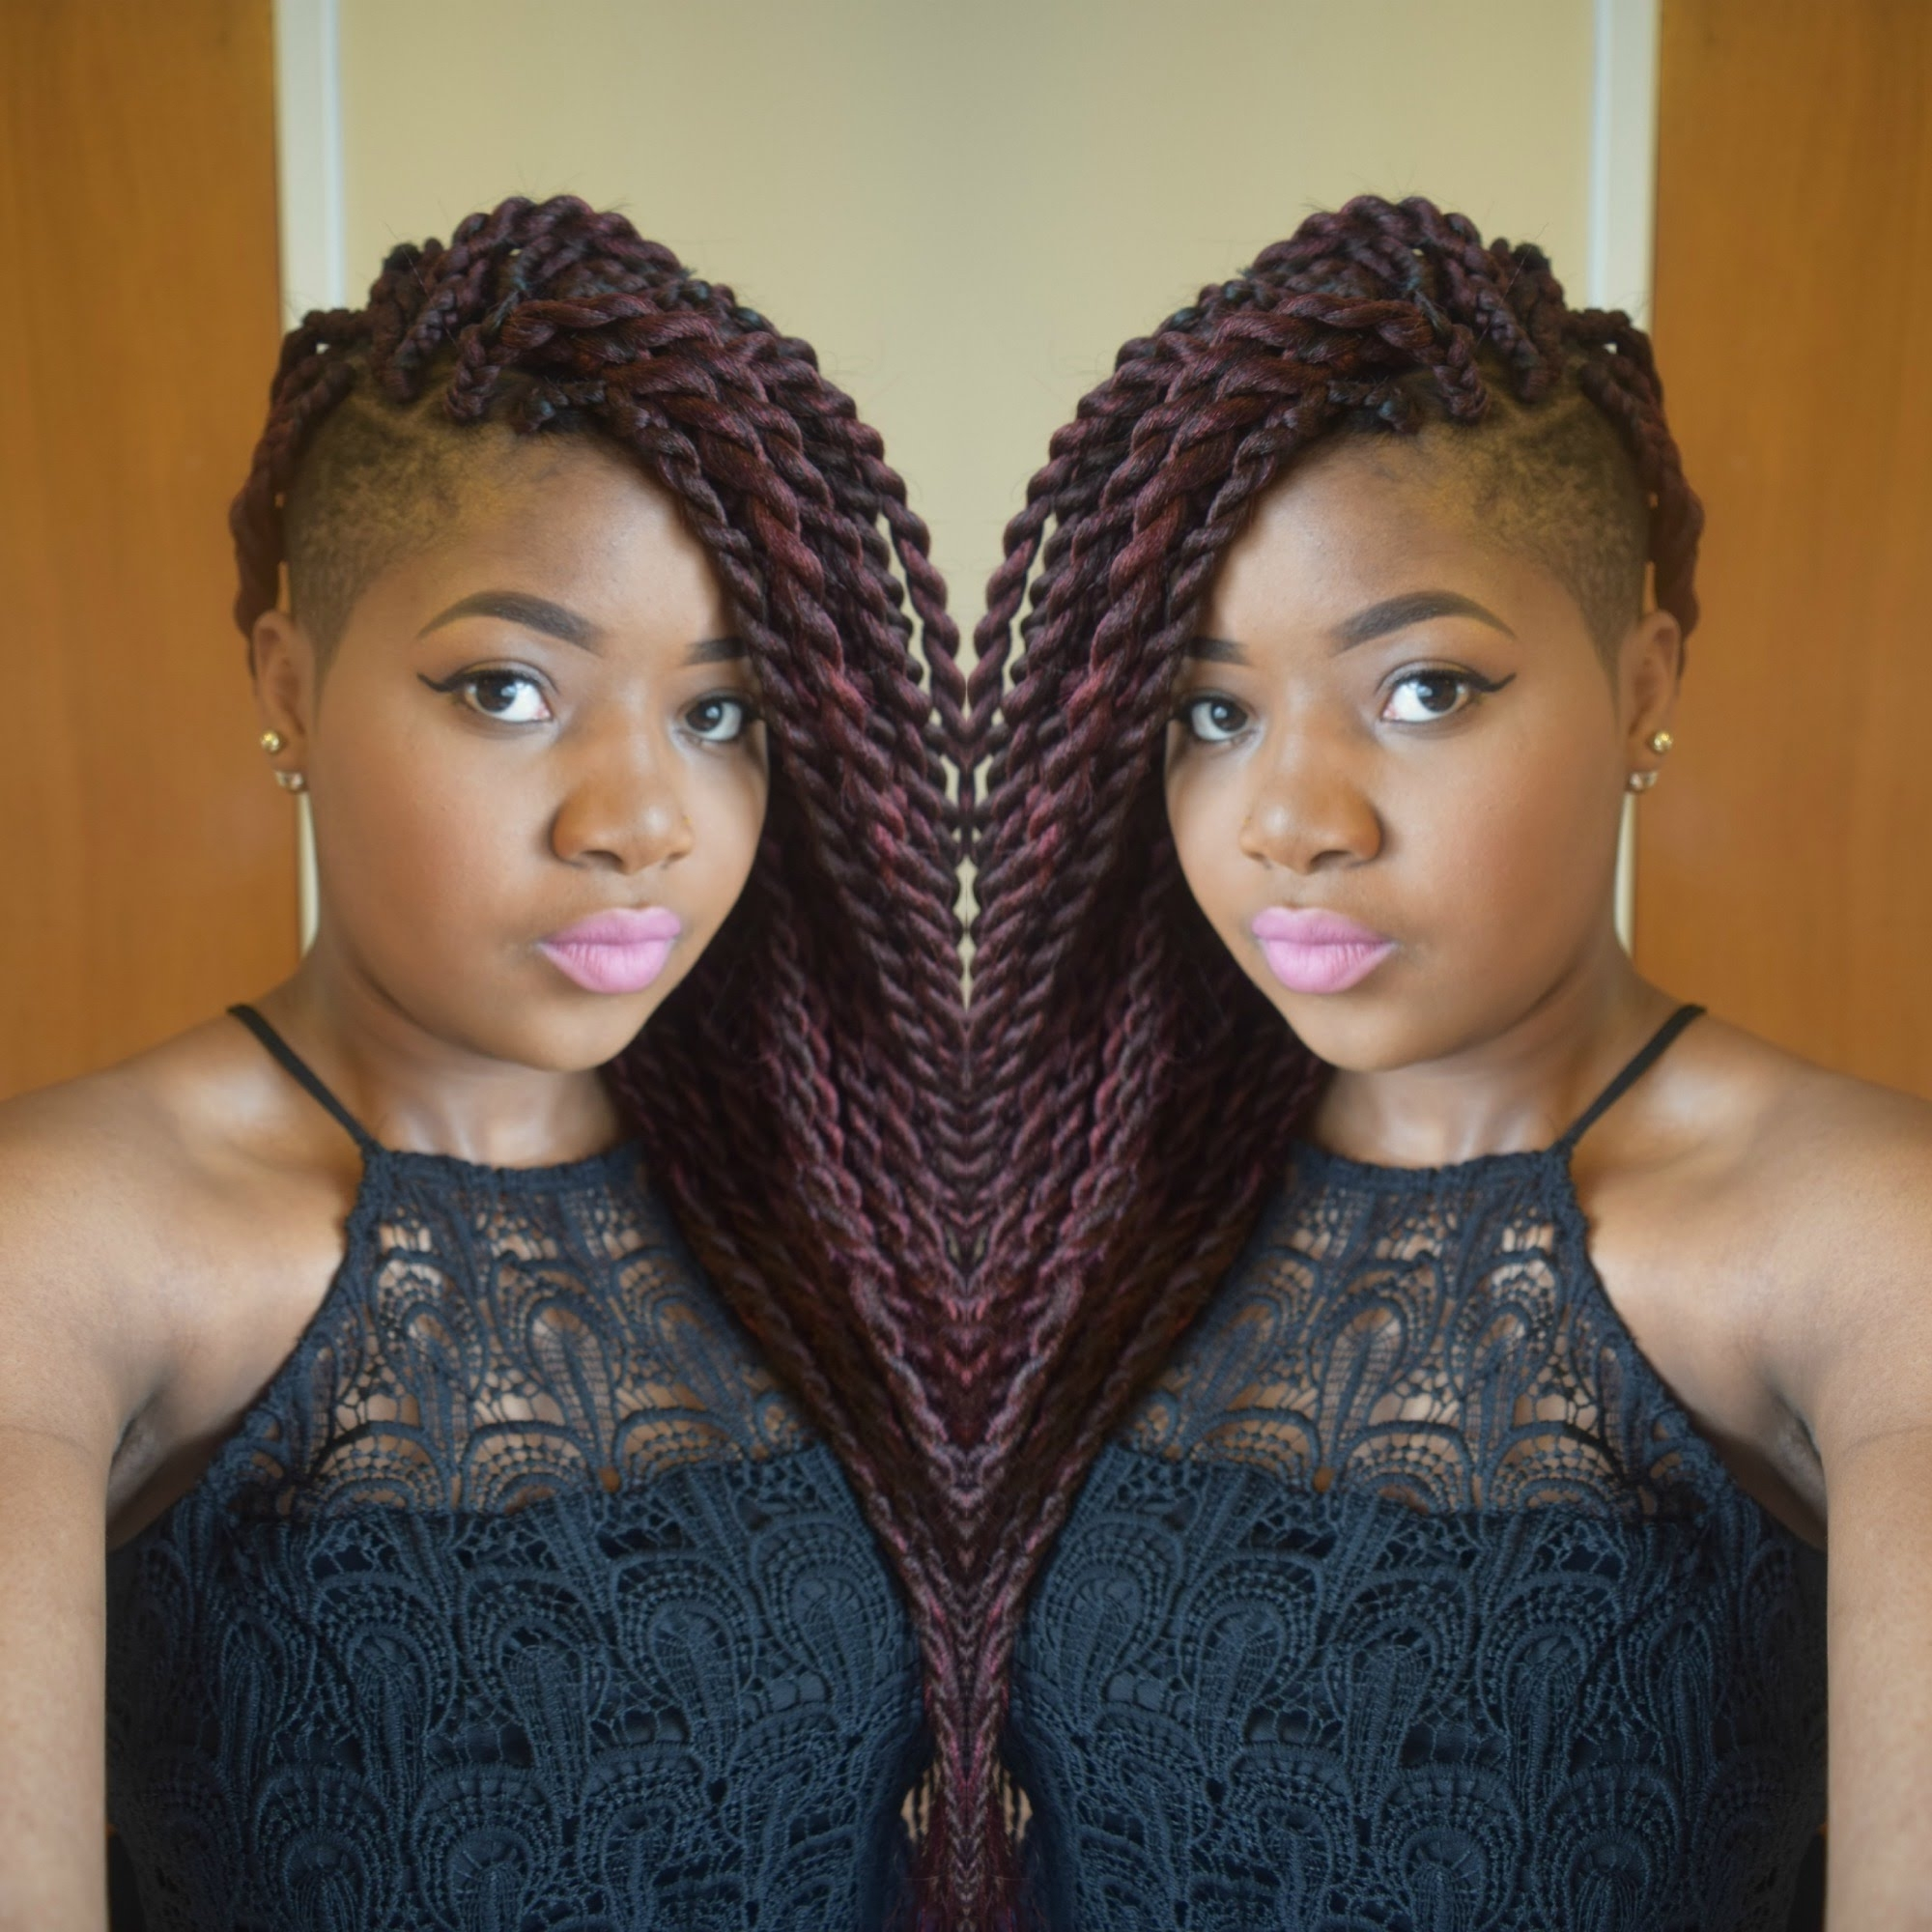 Famous Braided Hairstyles With Tapered Sides With Braided Hairstyles With Shaved Sides (View 6 of 15)